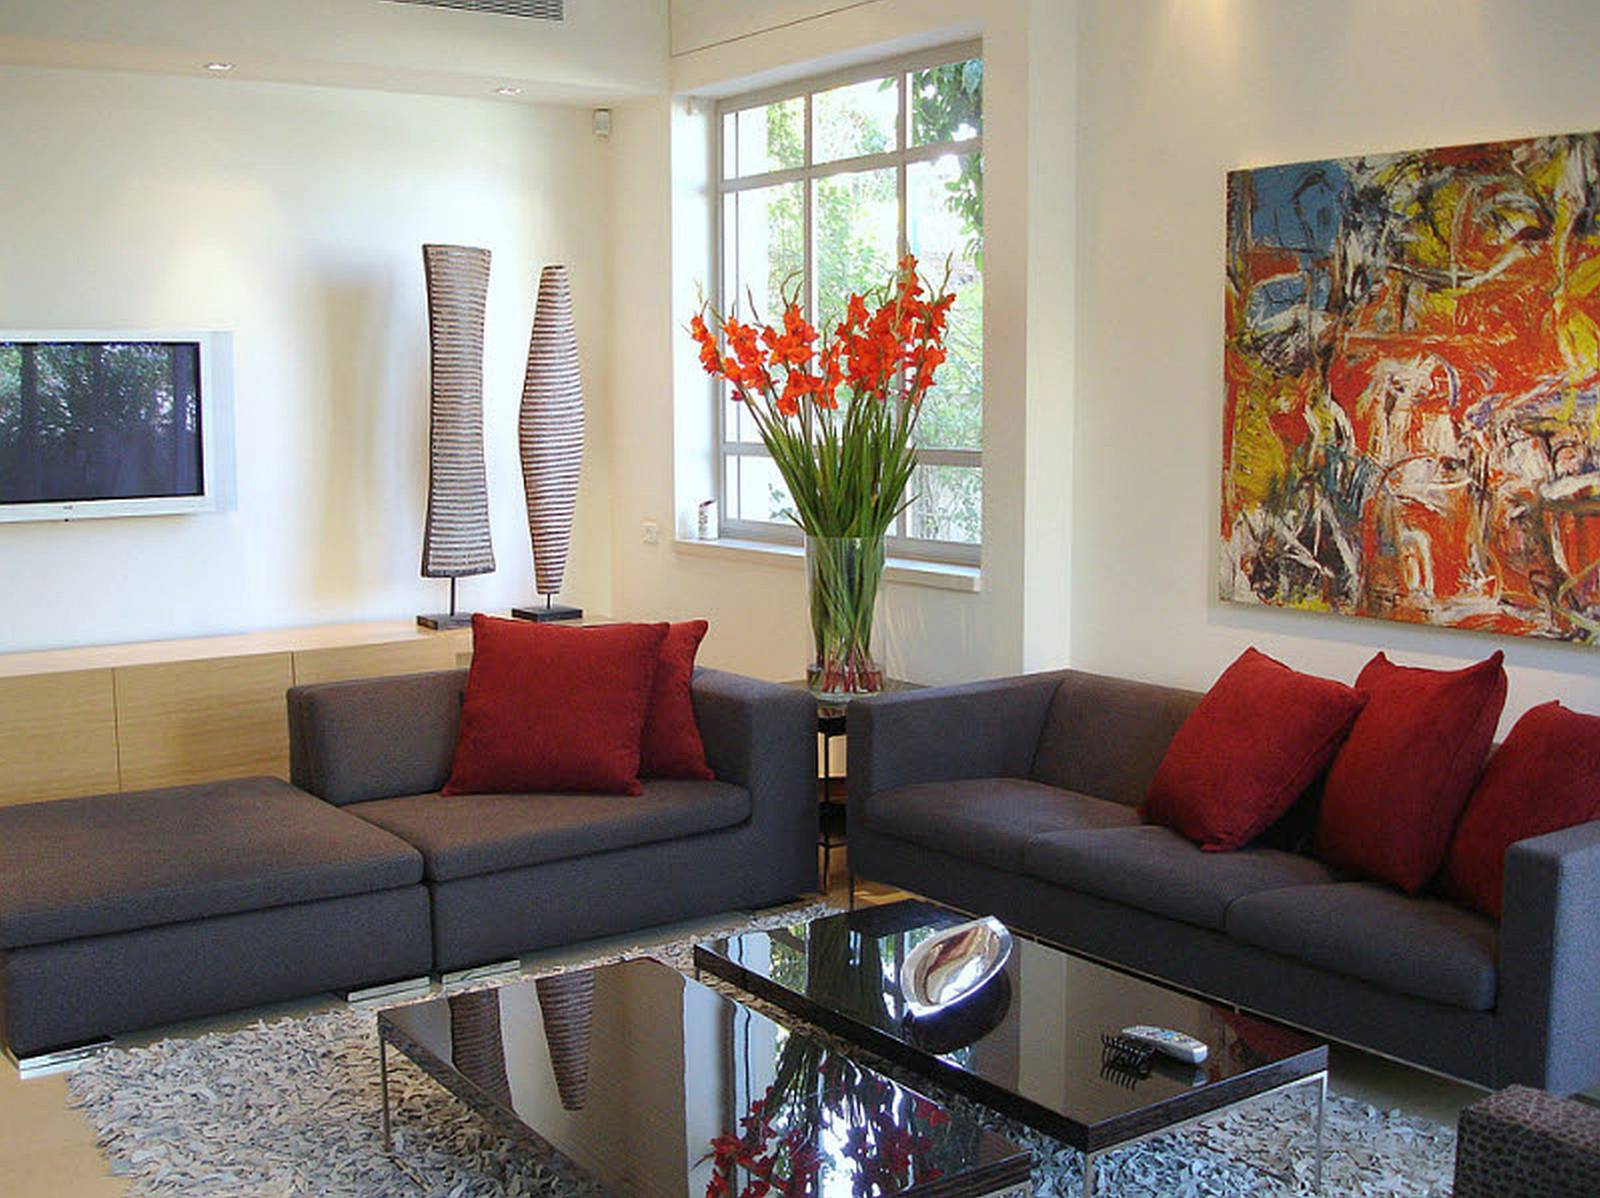 Furnish a Living Room on a Budget